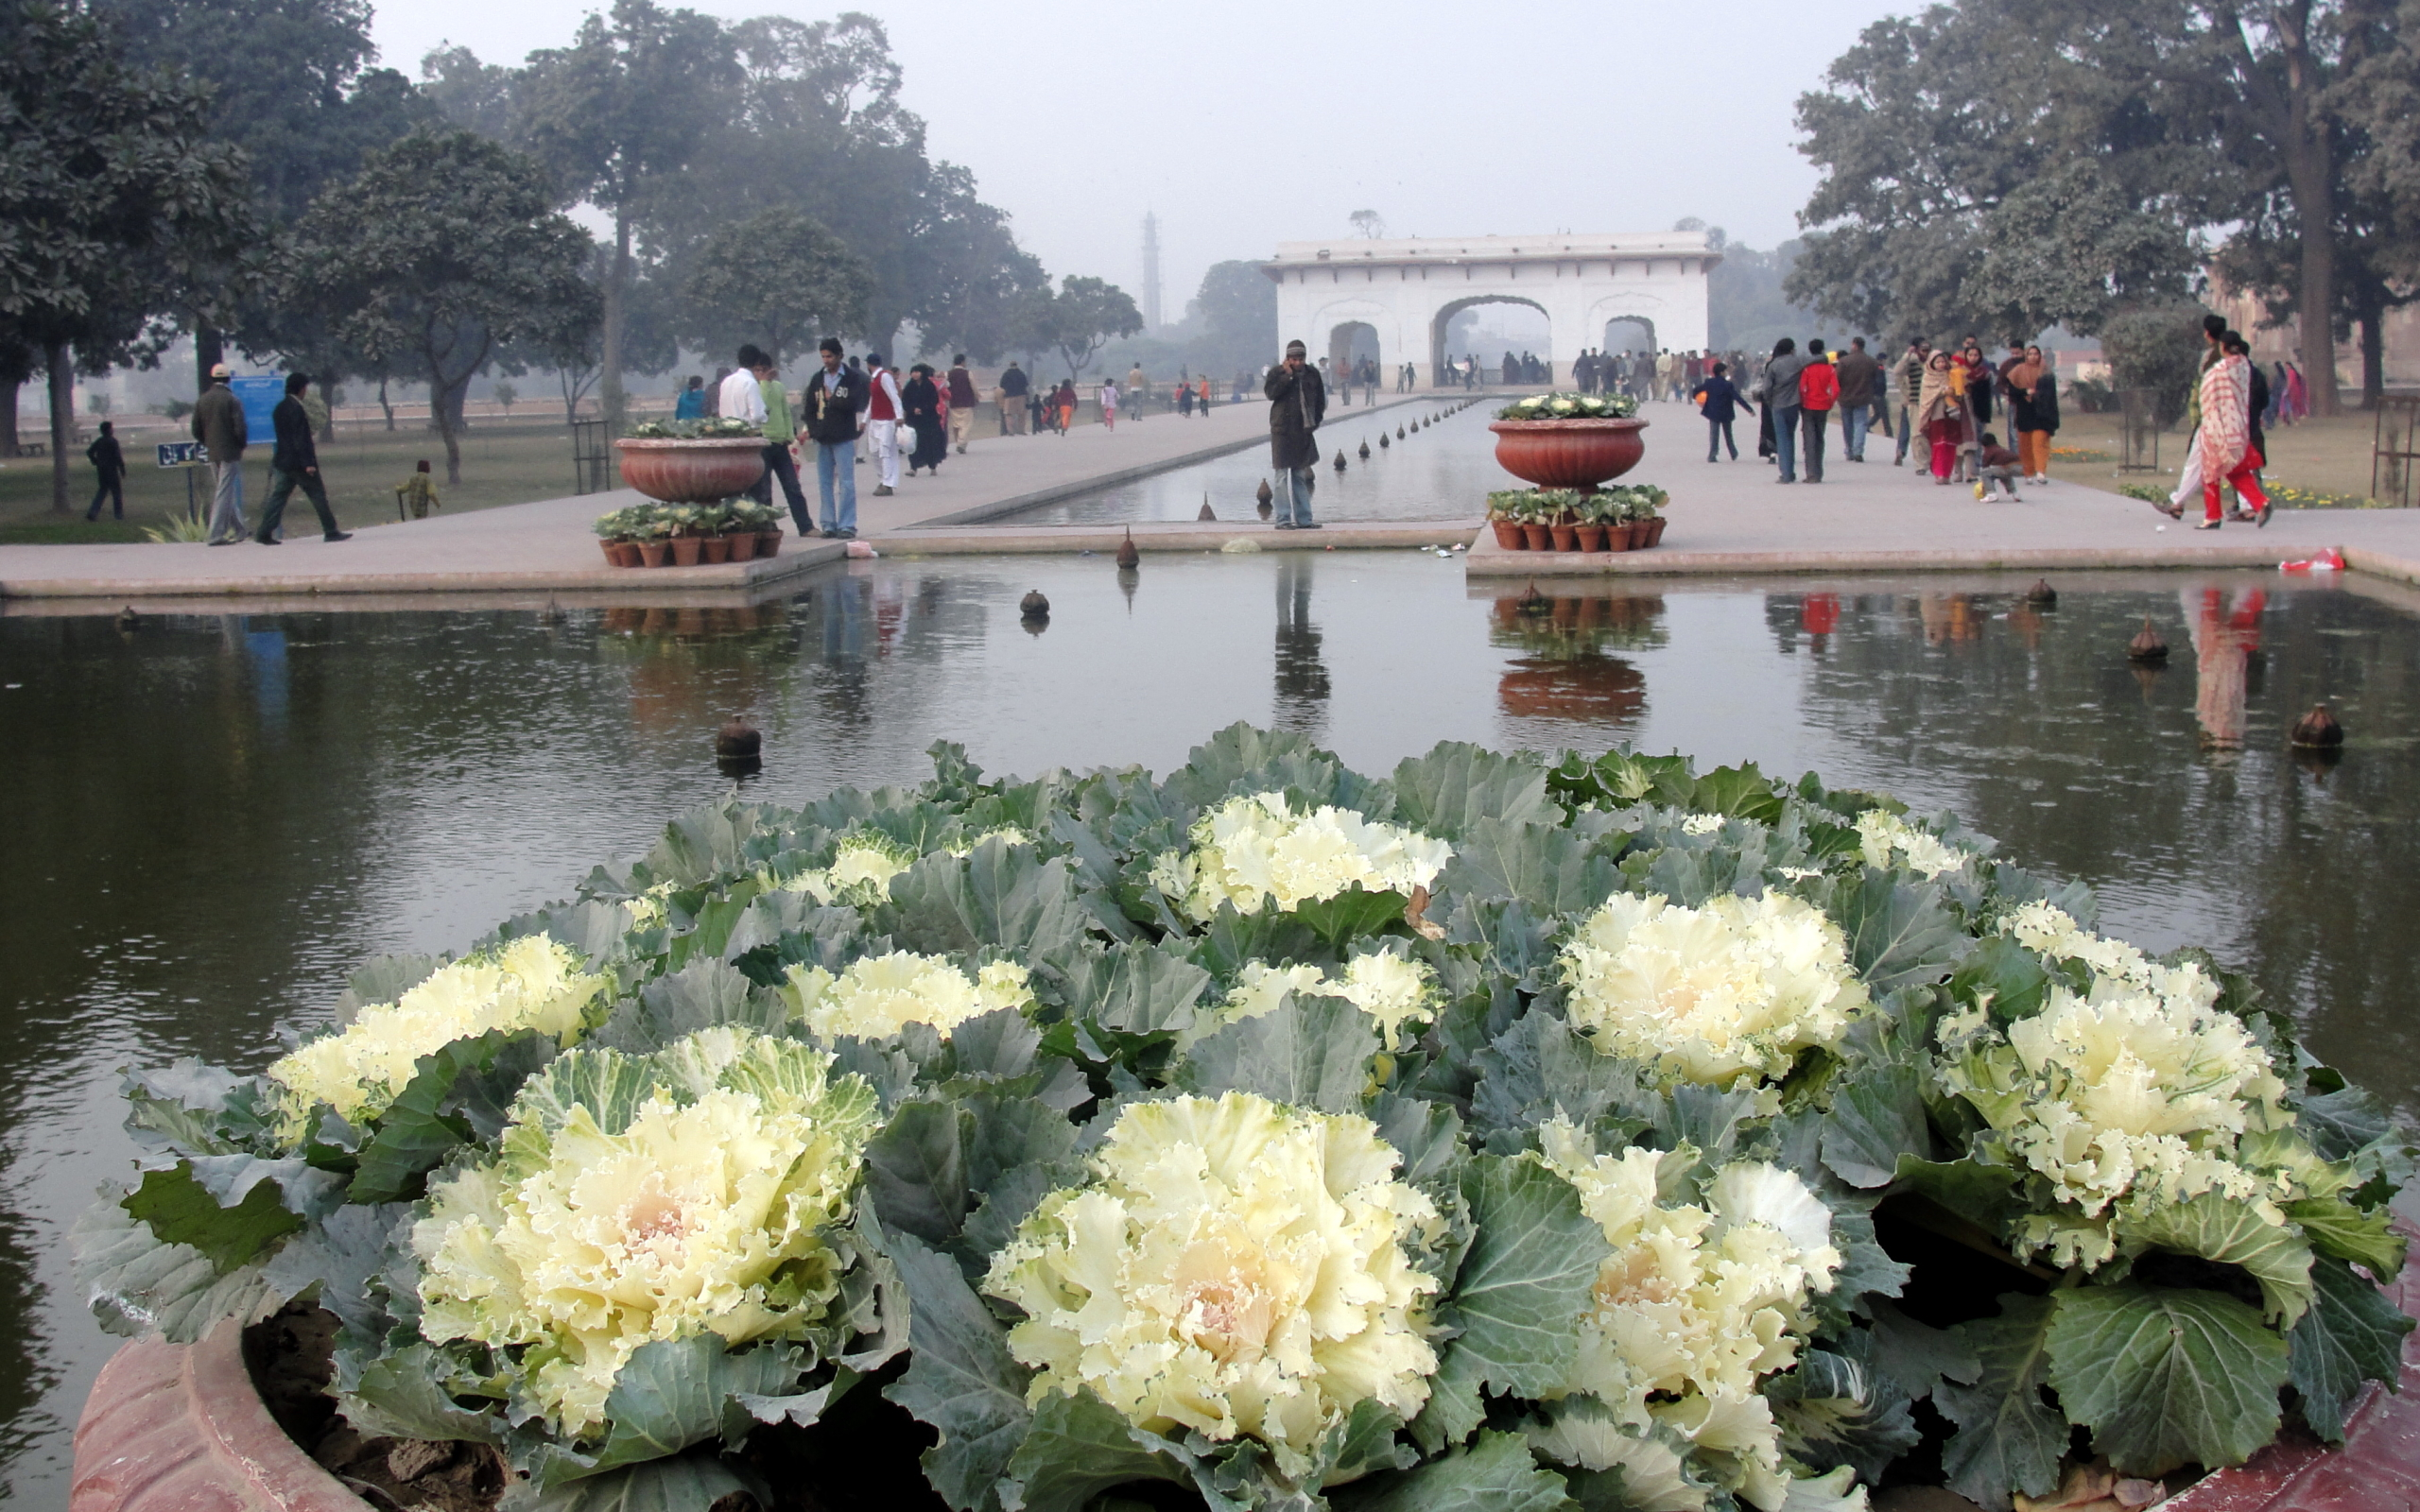 1920x1080 Cars Wallpaper Shalimar Gardens Wallpapers Shalimar Gardens Stock Photos